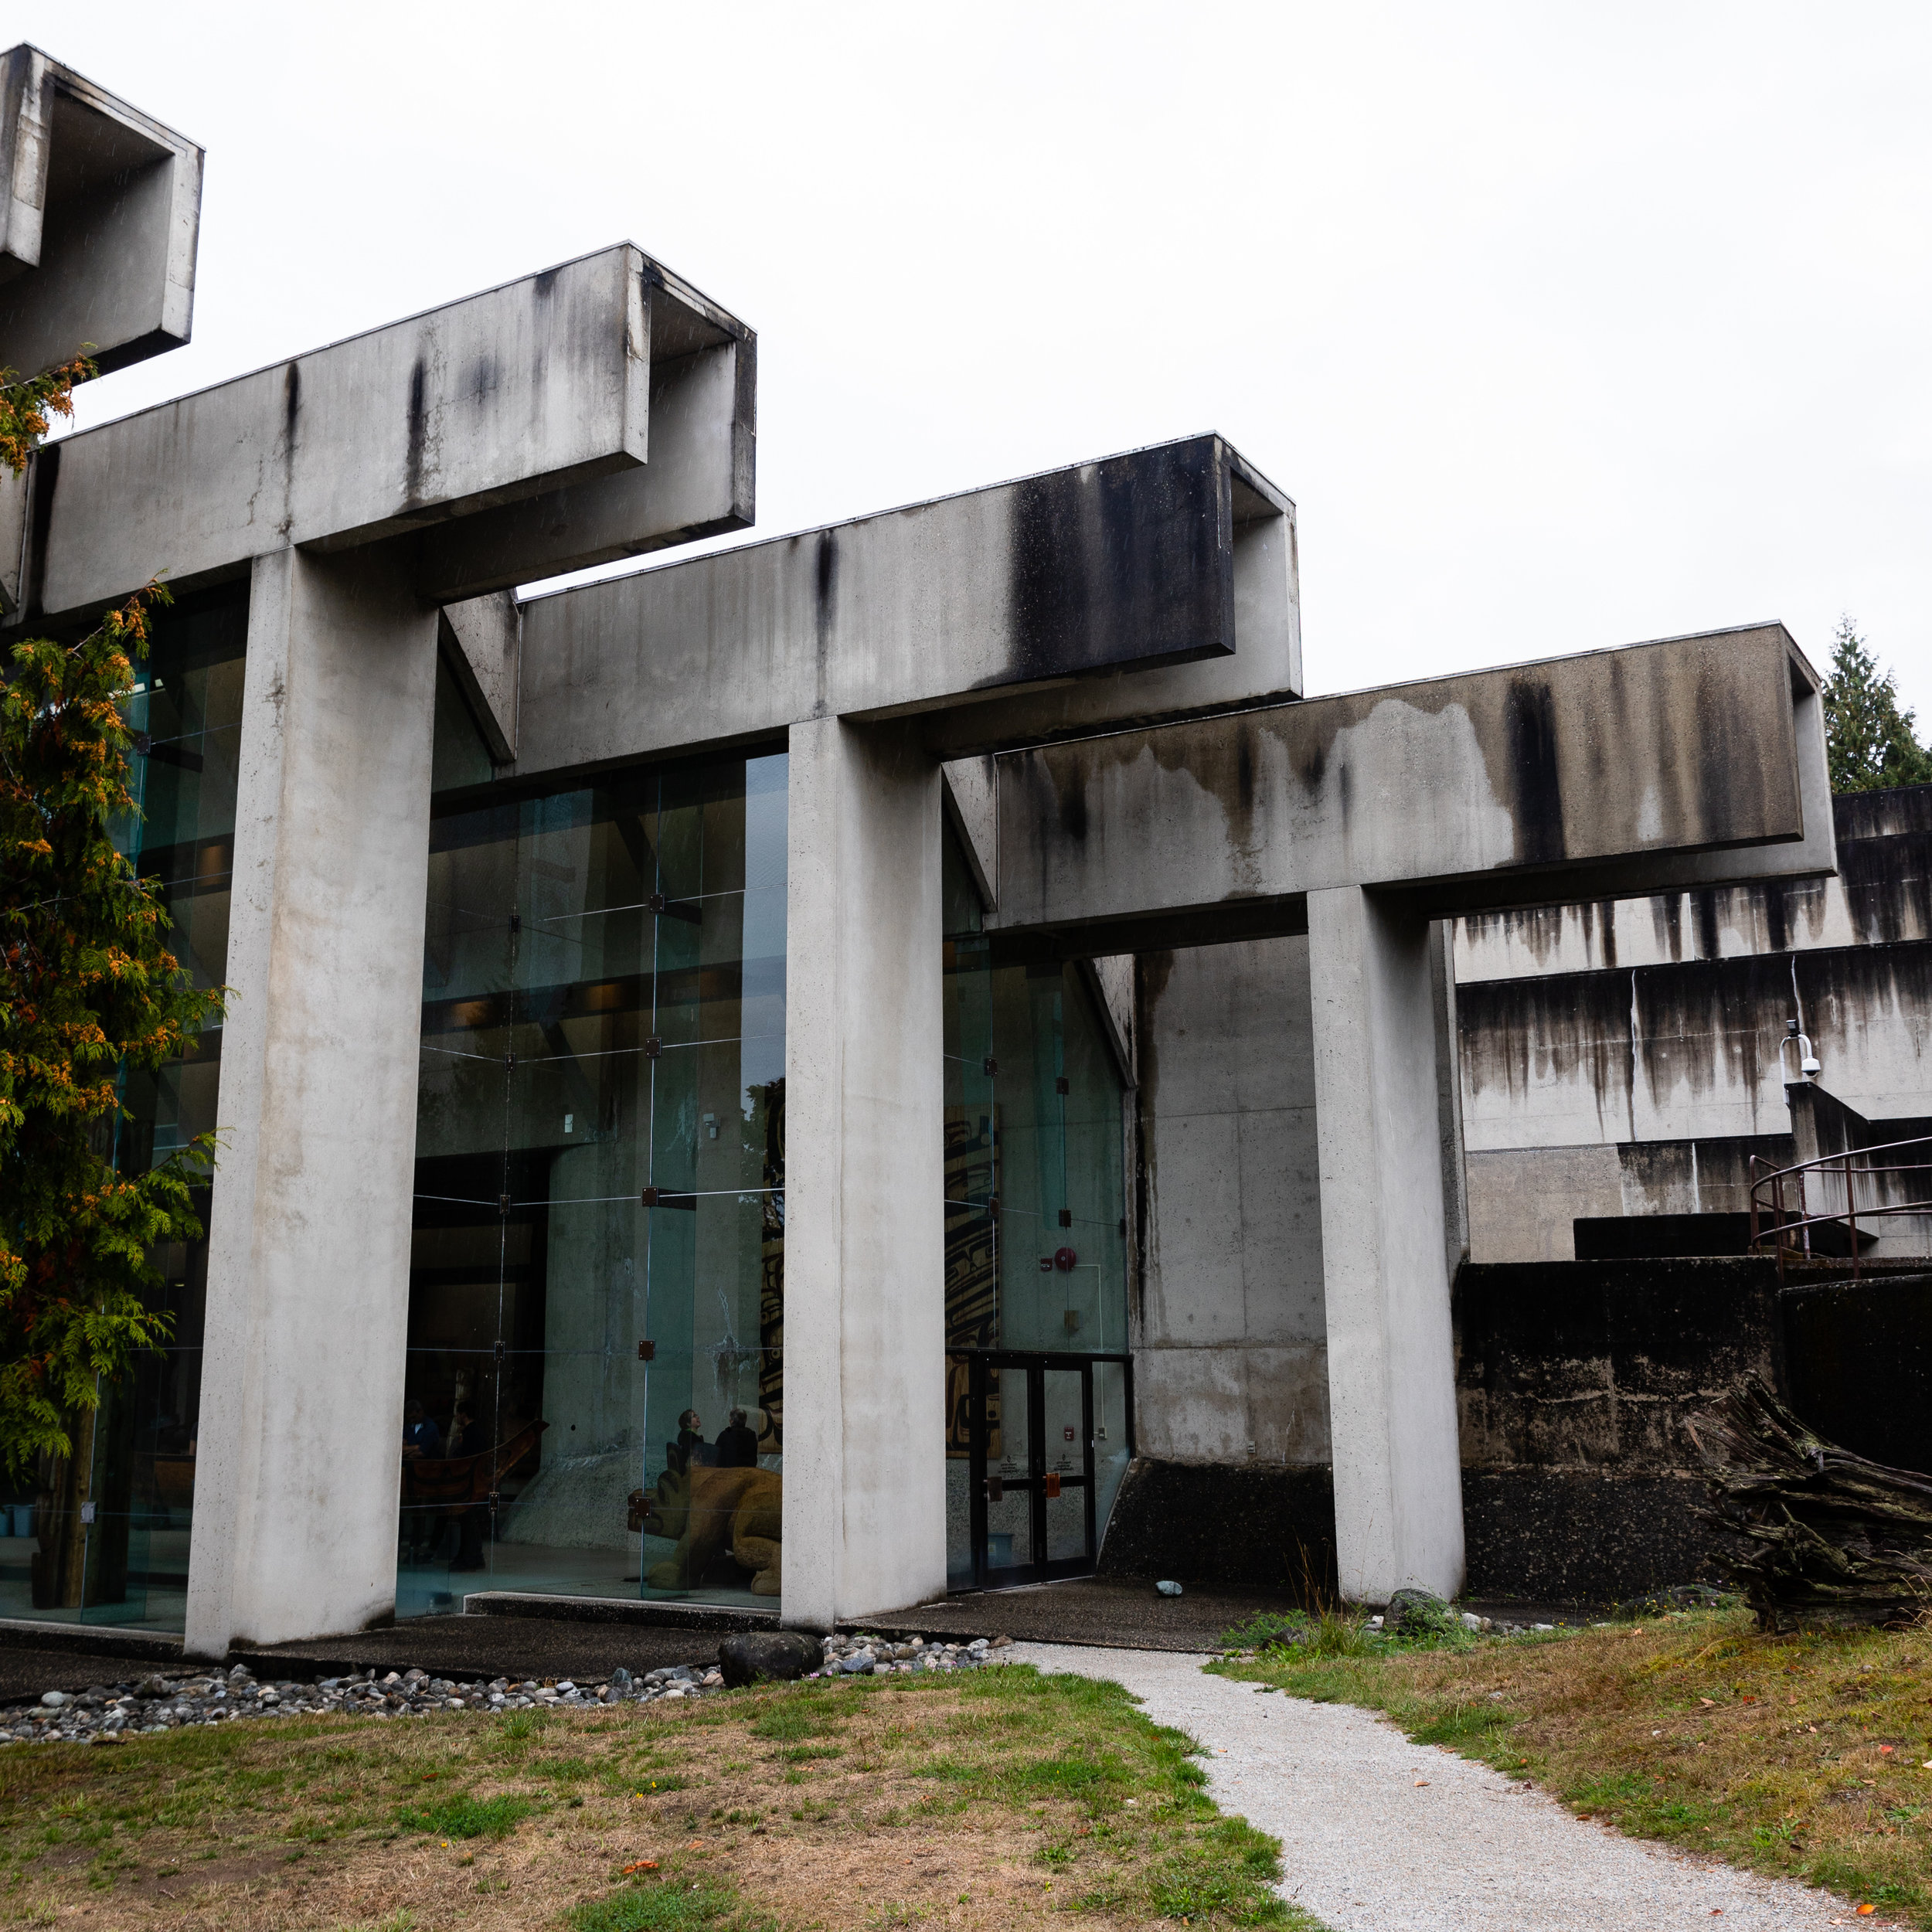 This is the Museum of Anthropology in Vancouver, BC. The shapes of the concrete frame of the museum are designed to reference the traditional architecture of the first peoples, on who's land the museum is built. On a rainy day like the day this photo was taken the textures in the concrete come to life.